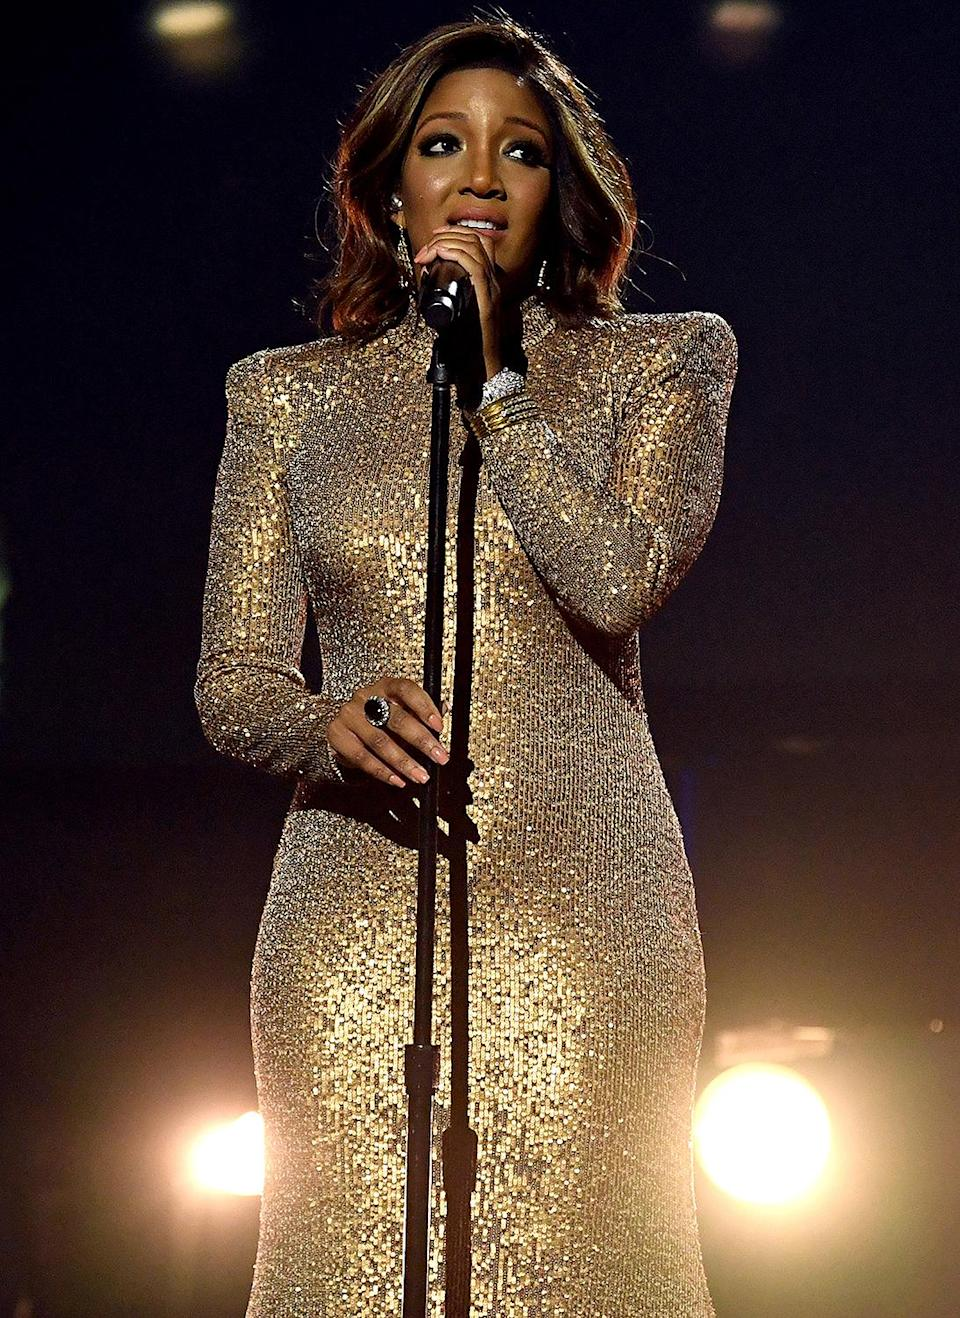 "<p>Mickey Guyton, who's no stranger to breaking barriers in the industry, will once again make history as the first Black artist to co-host the award show, alongside Keith Urban. The ""Black Like Me"" singer, who became the first Black female artist to perform solo at the show last year, spoke to <a href=""https://www.eonline.com/news/1259503/mickey-guyton-shares-how-the-acm-awards-will-address-inclusivity-after-the-morgan-wallen-scandal"" rel=""nofollow noopener"" target=""_blank"" data-ylk=""slk:E! News"" class=""link rapid-noclick-resp""><i>E! News</i></a> about the increased inclusivity being highlighted in this year's show. </p> <p>""I think the topic of inclusivity being addressed is by the award show itself,"" the <a href=""https://people.com/parents/grammys-2021-mickey-guyton-being-mom-greatest-thing-i-will-ever-experience/"" rel=""nofollow noopener"" target=""_blank"" data-ylk=""slk:new mom"" class=""link rapid-noclick-resp"">new mom</a> told the outlet. ""I'm part of the ACM Diversity Task Force ... We started this in 2019 and they have been relentlessly working on diversifying the awards in front of the camera and behind the scenes. And that is showing up on the awards. And I'm just so excited to be a part of that change.""</p>"